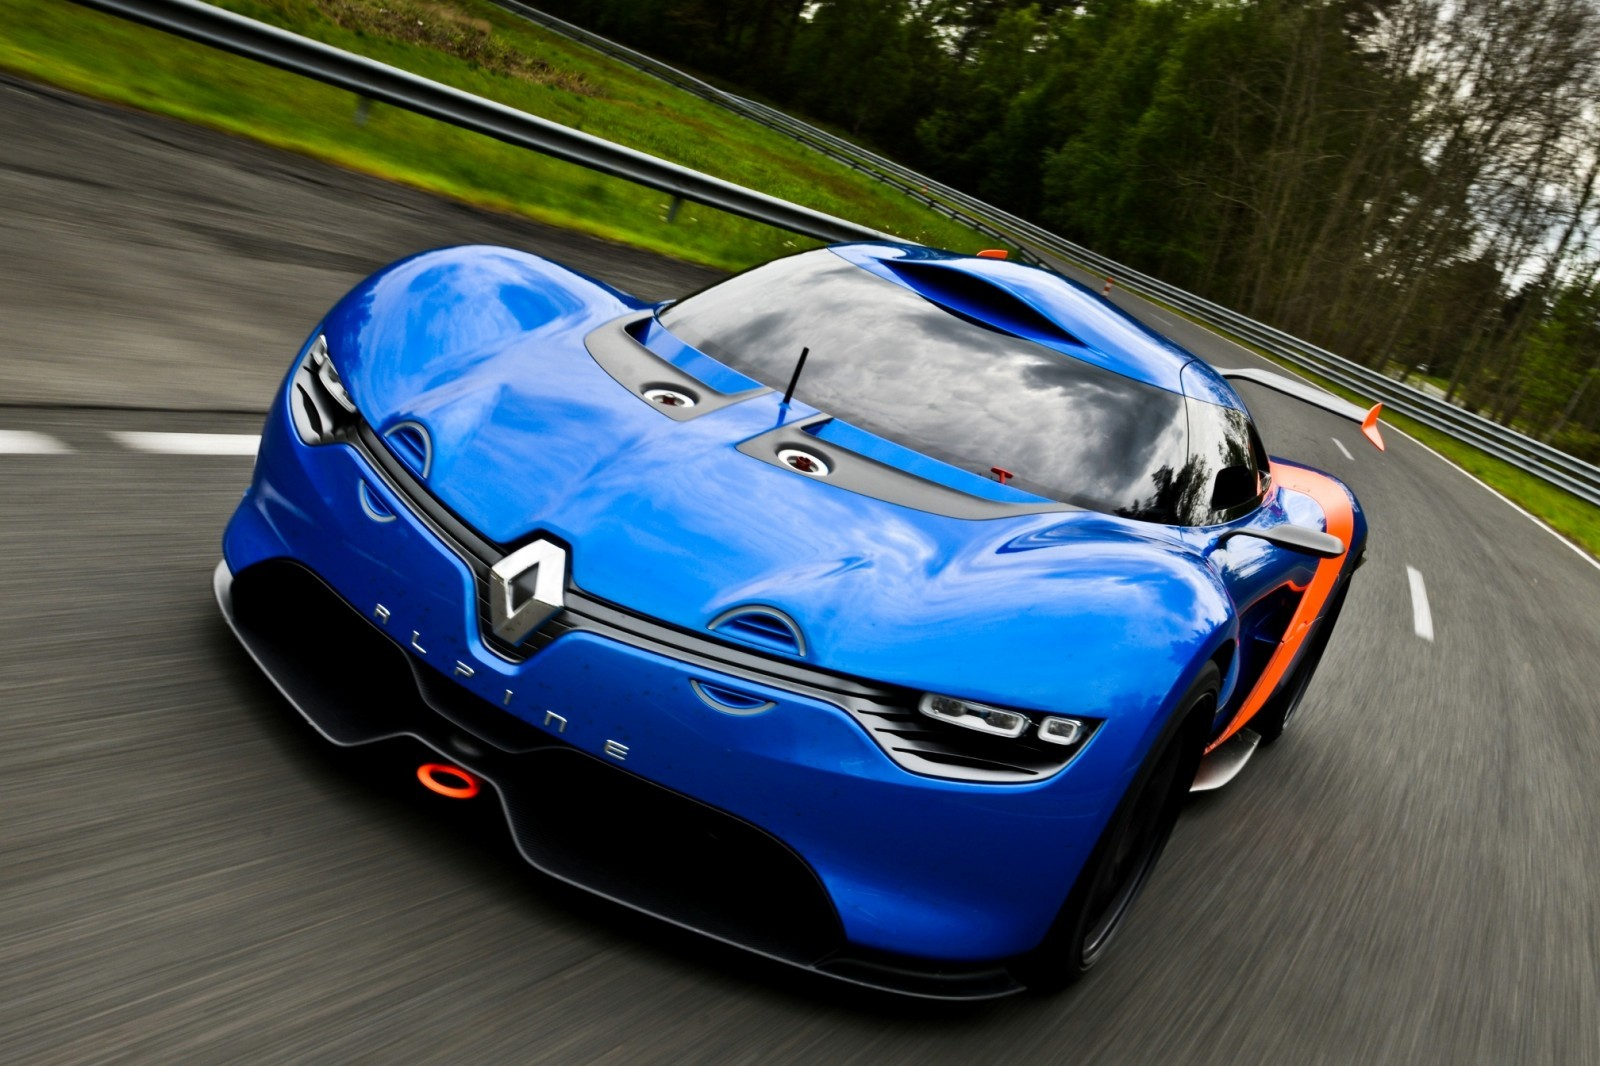 Concept Flashback - 2012 Renault Alpine A110-50 A Blend of M64 and A110 Berlinette 55